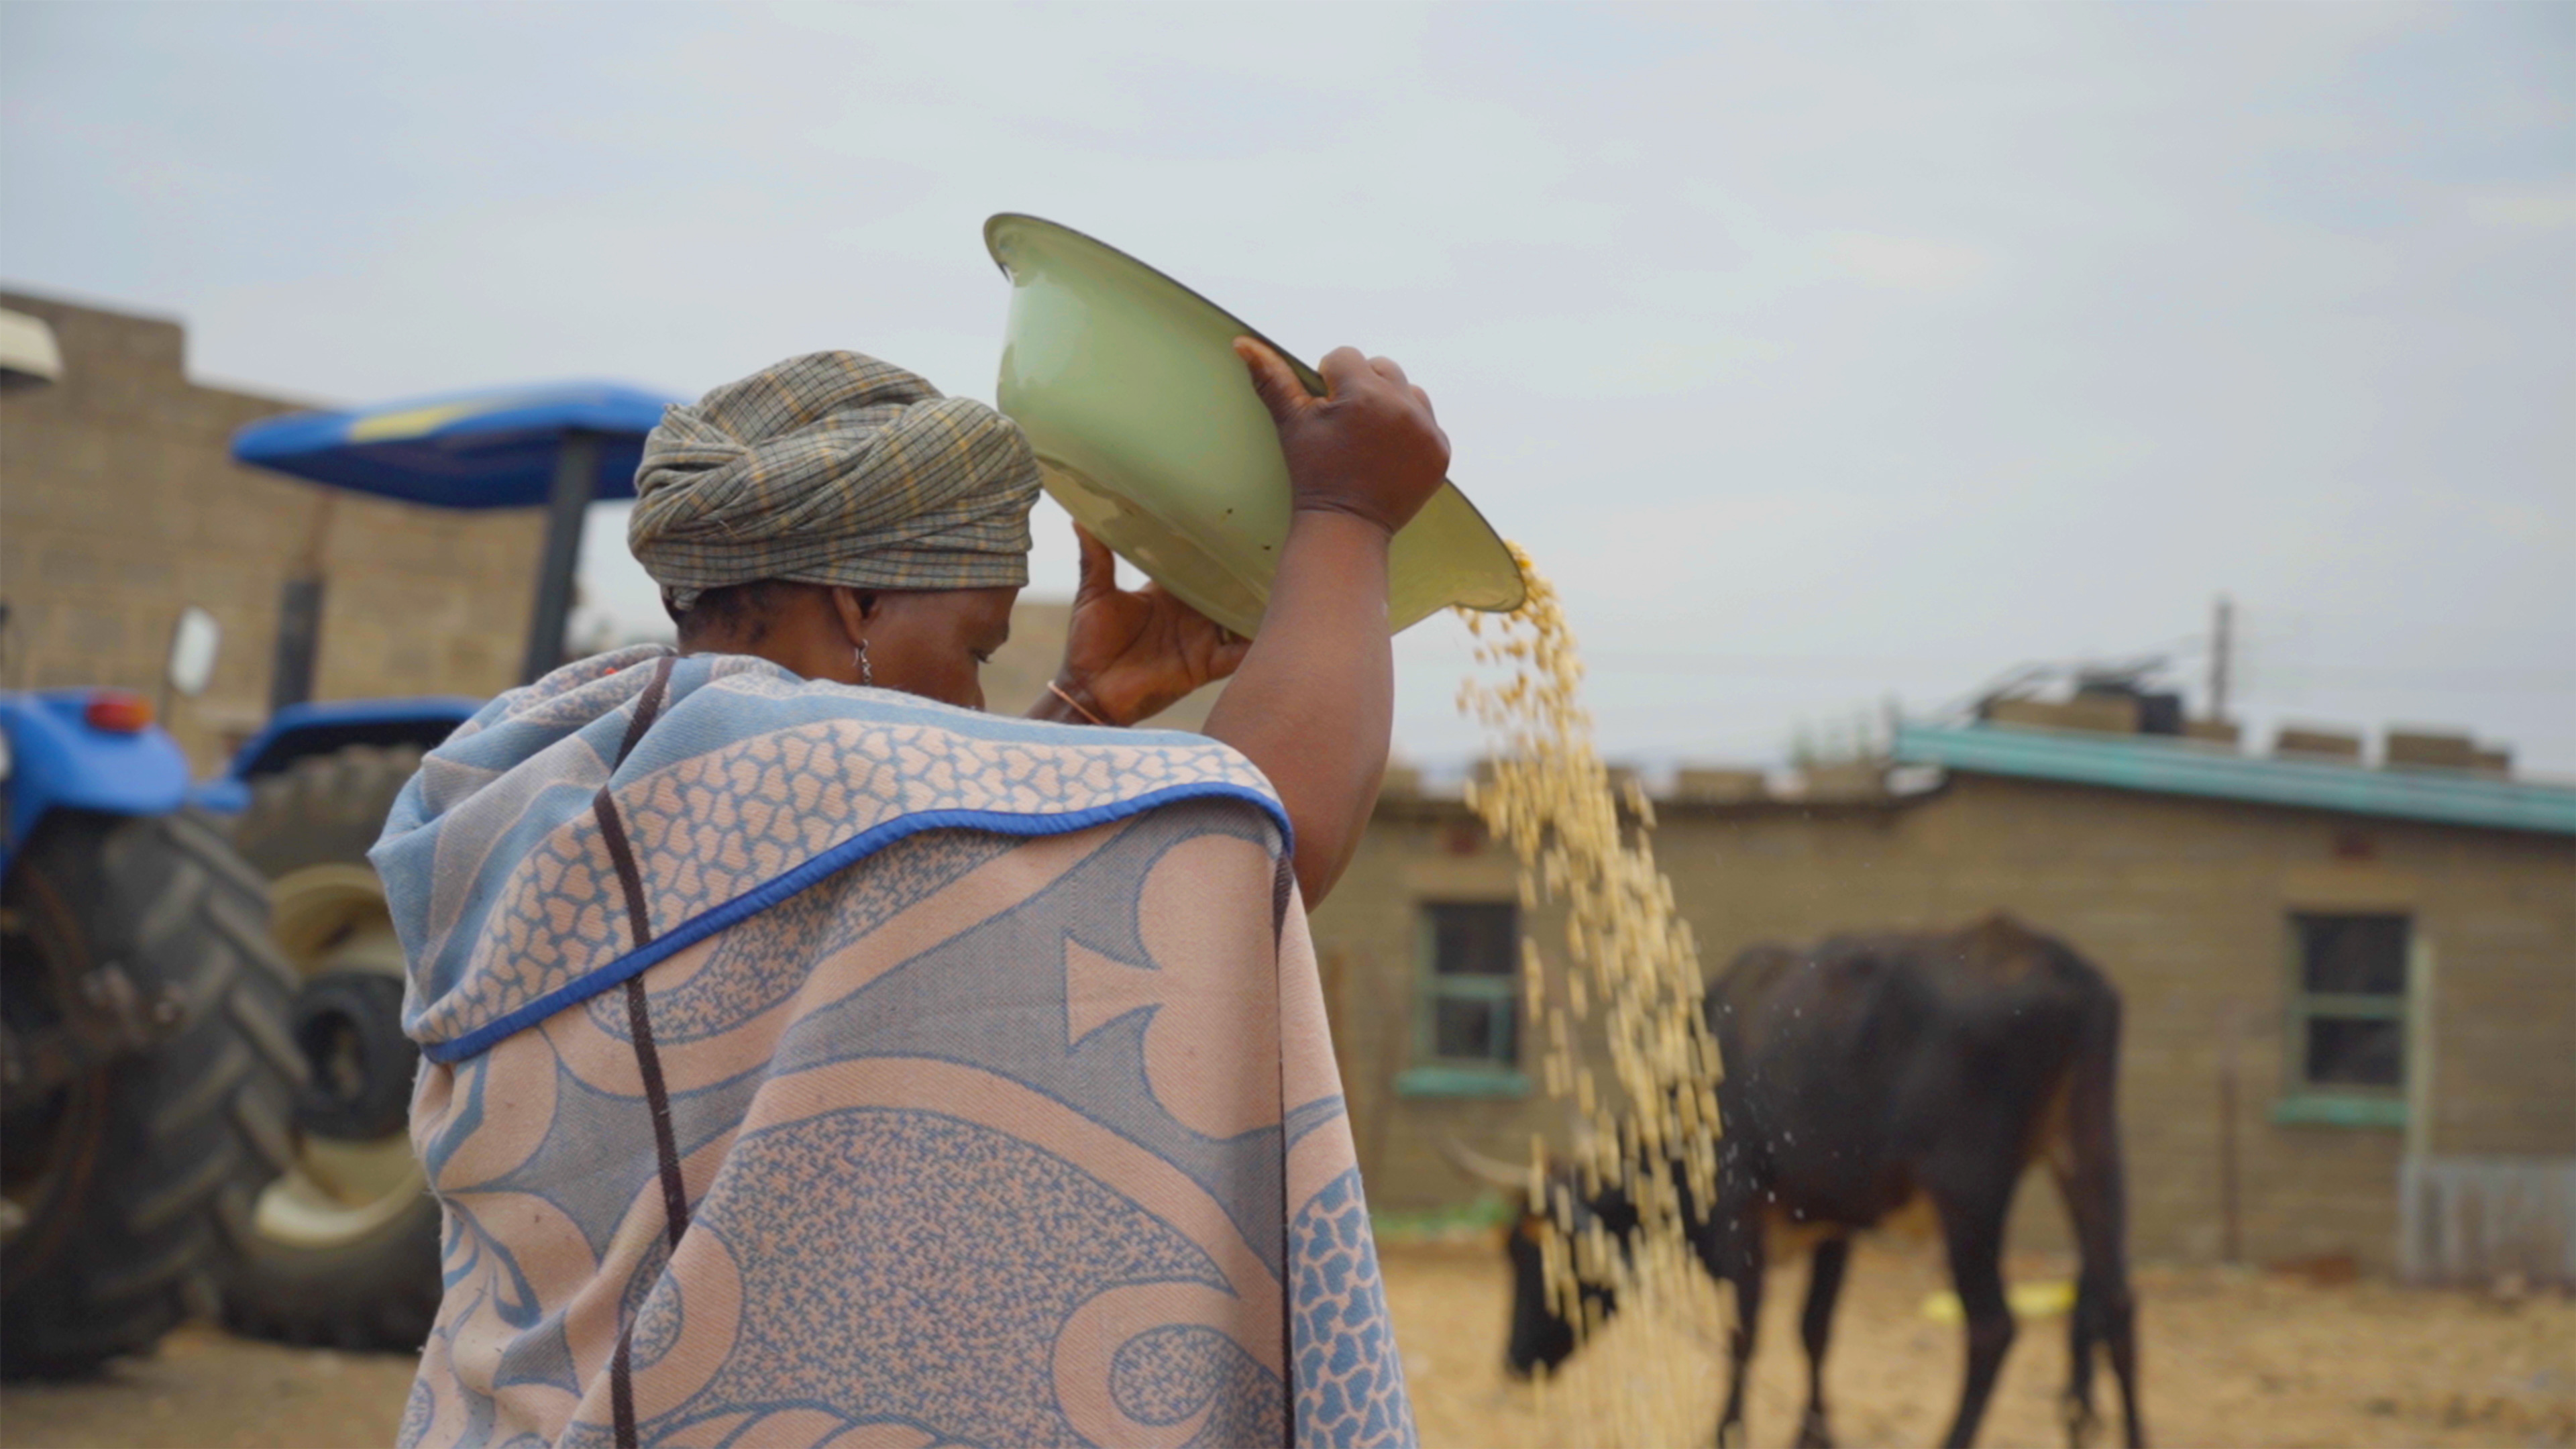 Posho client cleaning maize before milling process